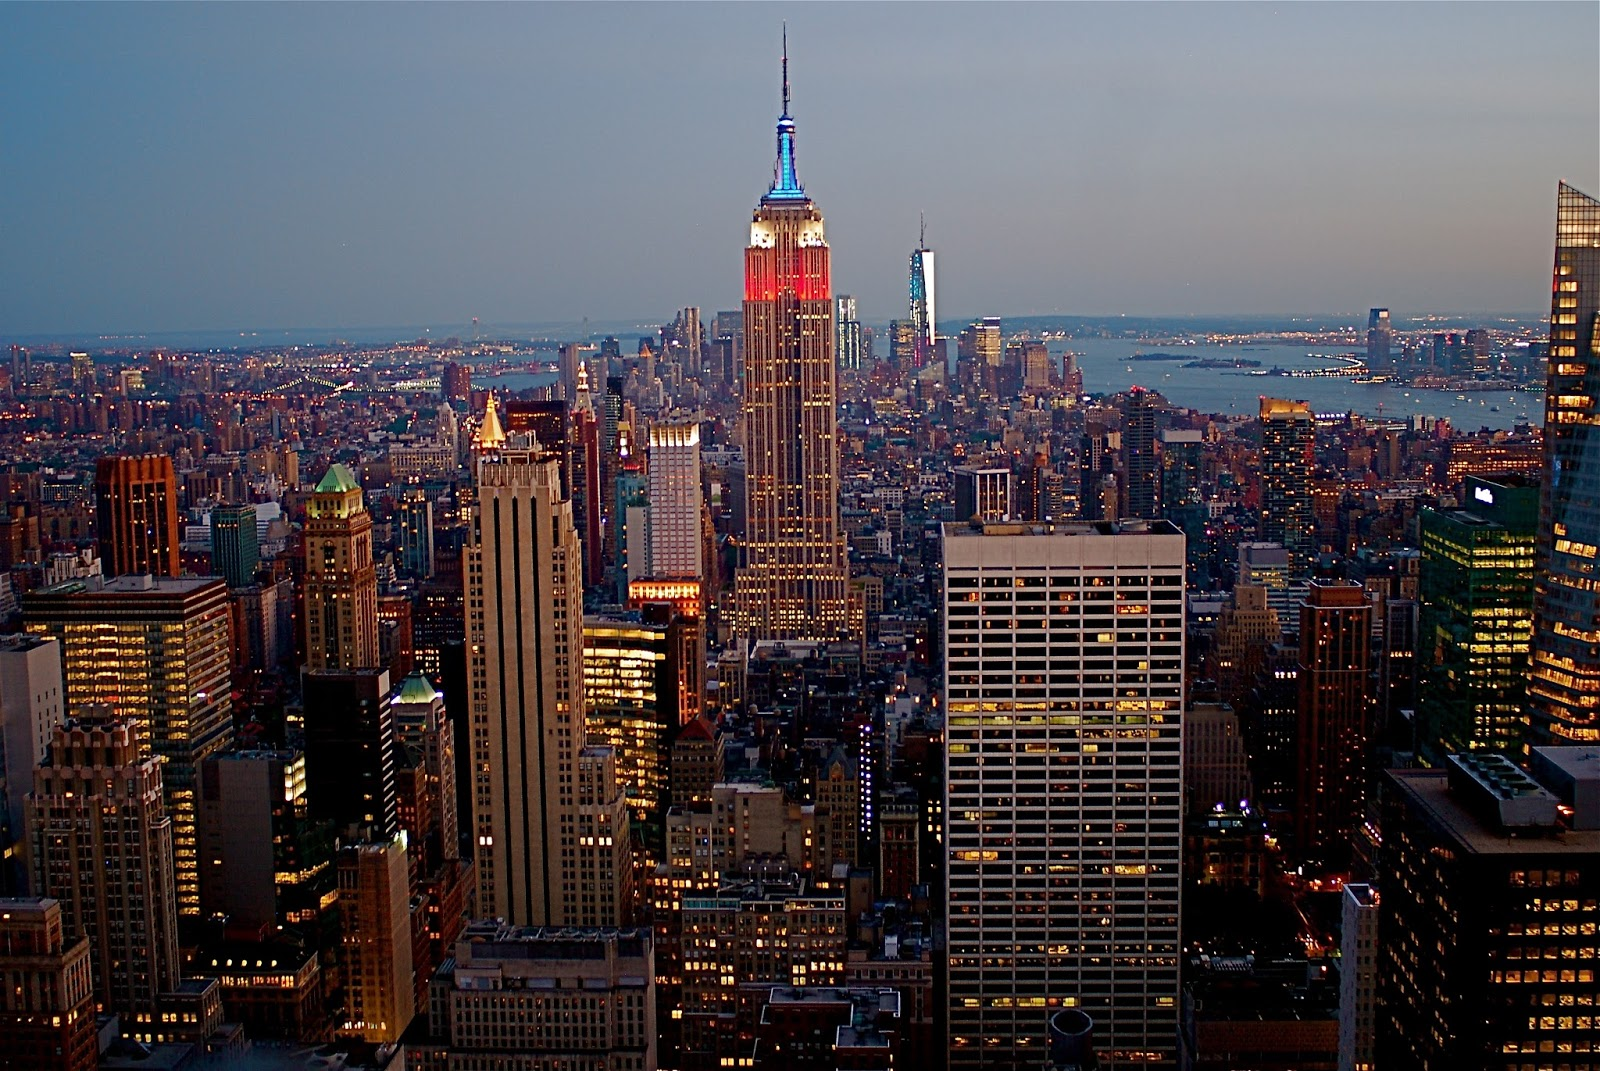 NYC ♥ NYC: Views From The Top Of The Rock® Observation